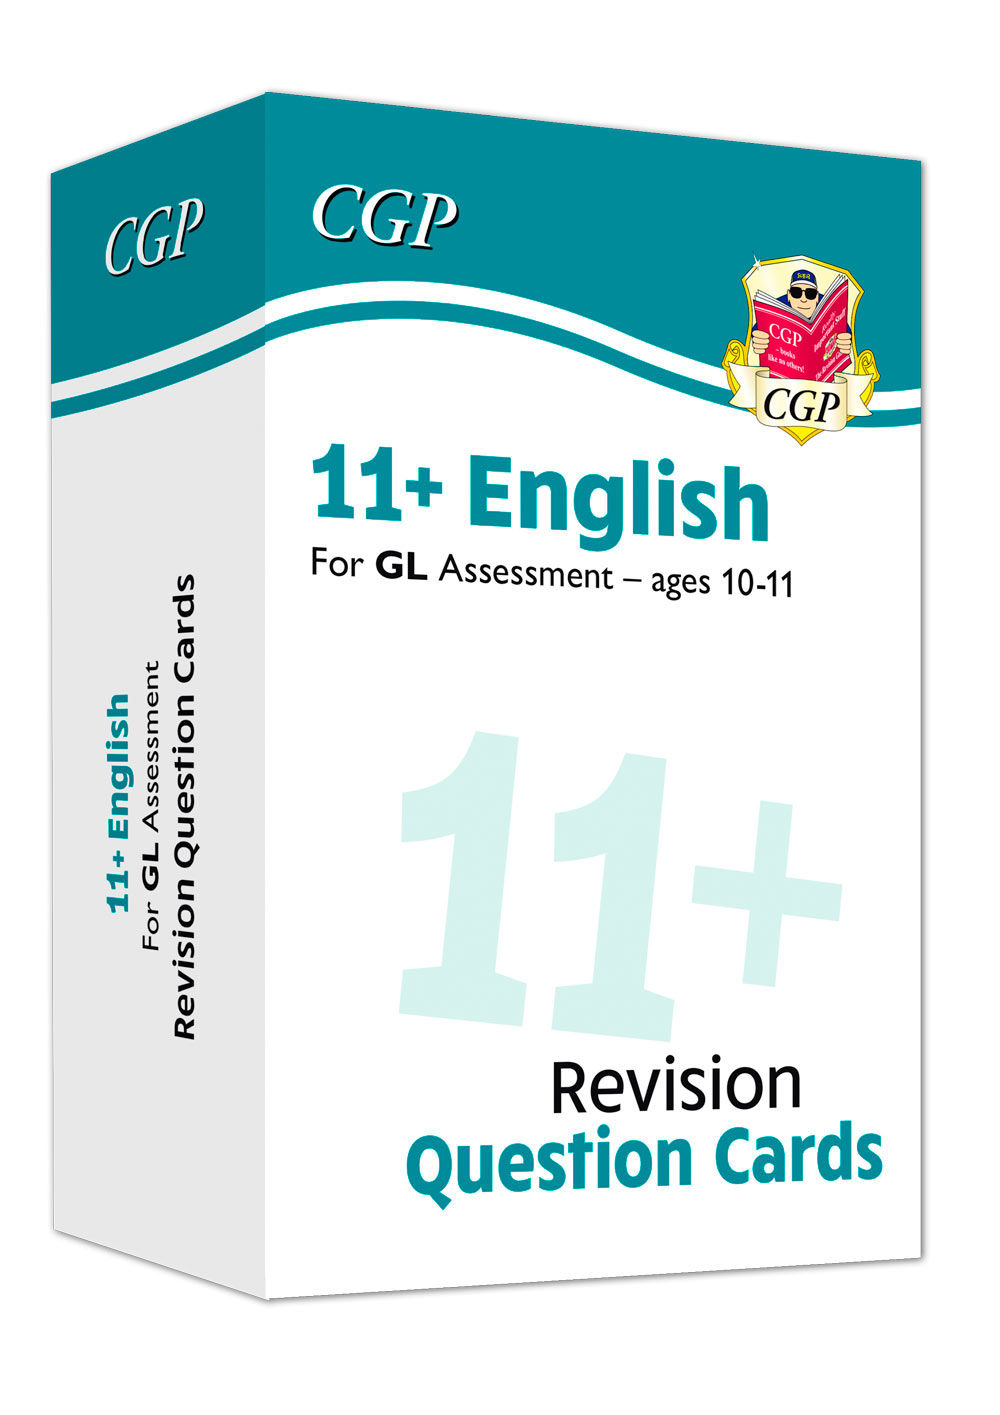 E6FE1 - New 11+ GL English Practice Question Cards - Ages 10-11